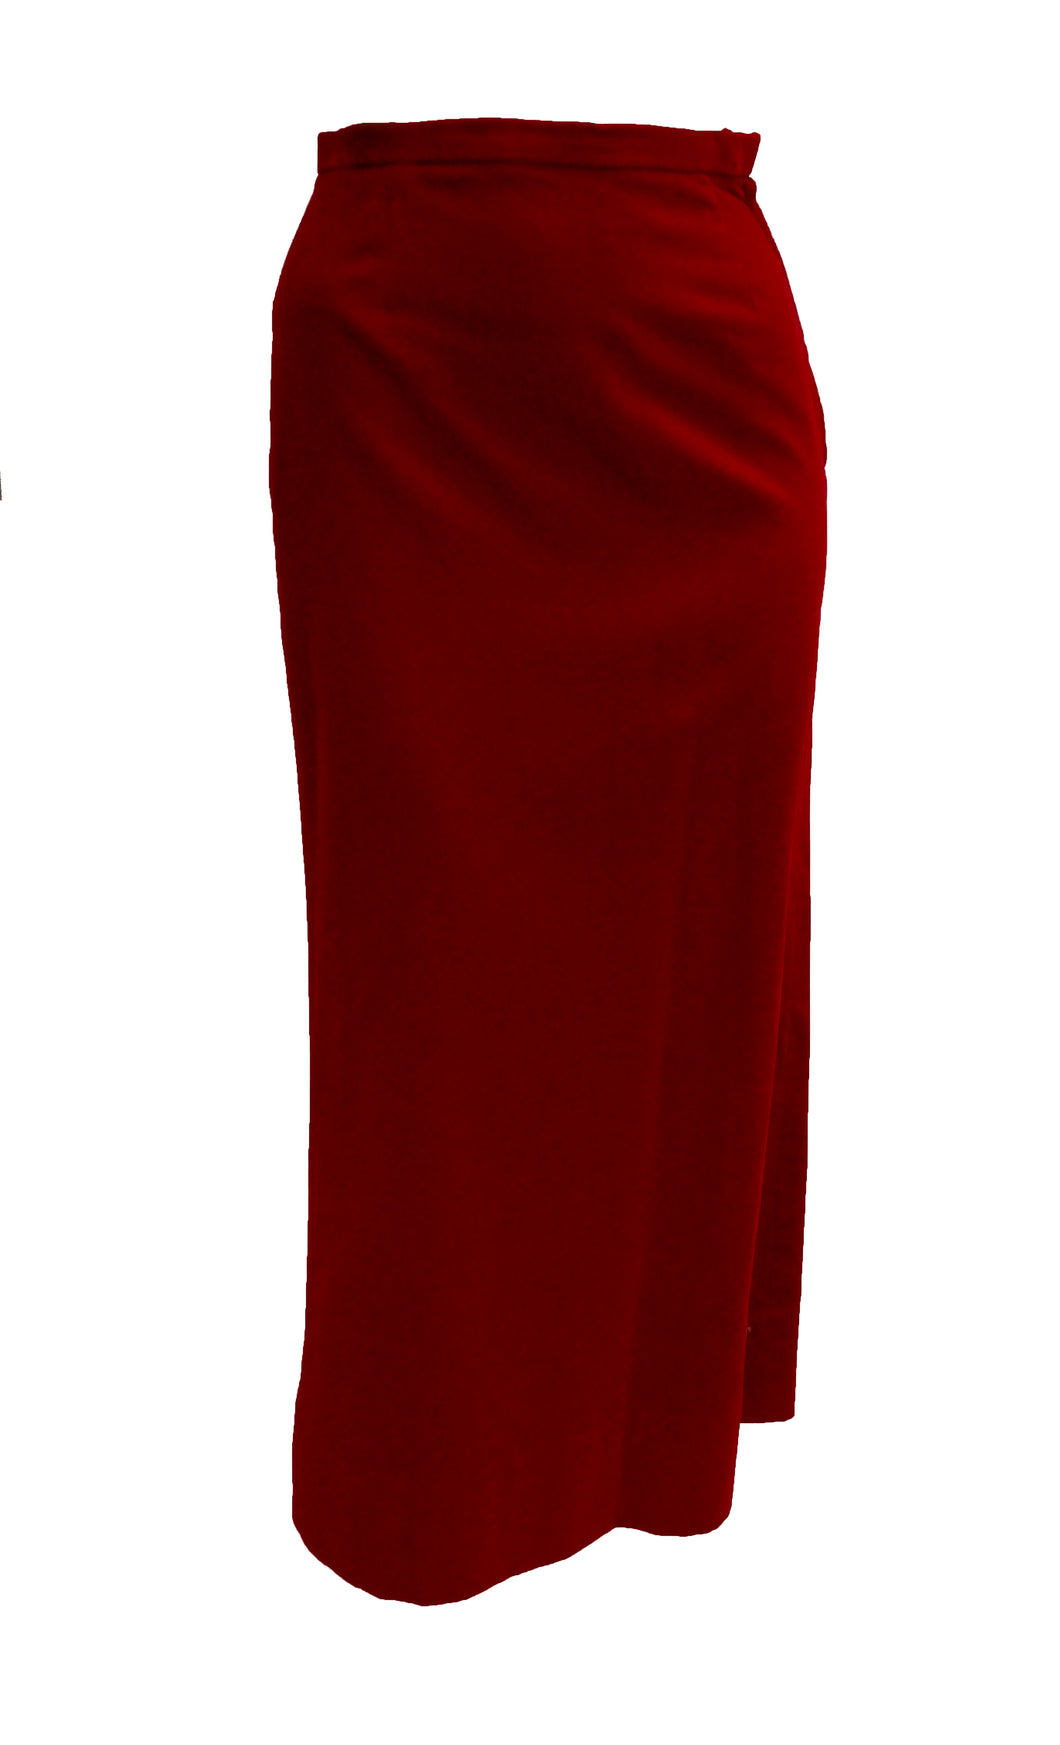 Vintage Martinique Long Skirt in Cranberry Velvet, UK8-10